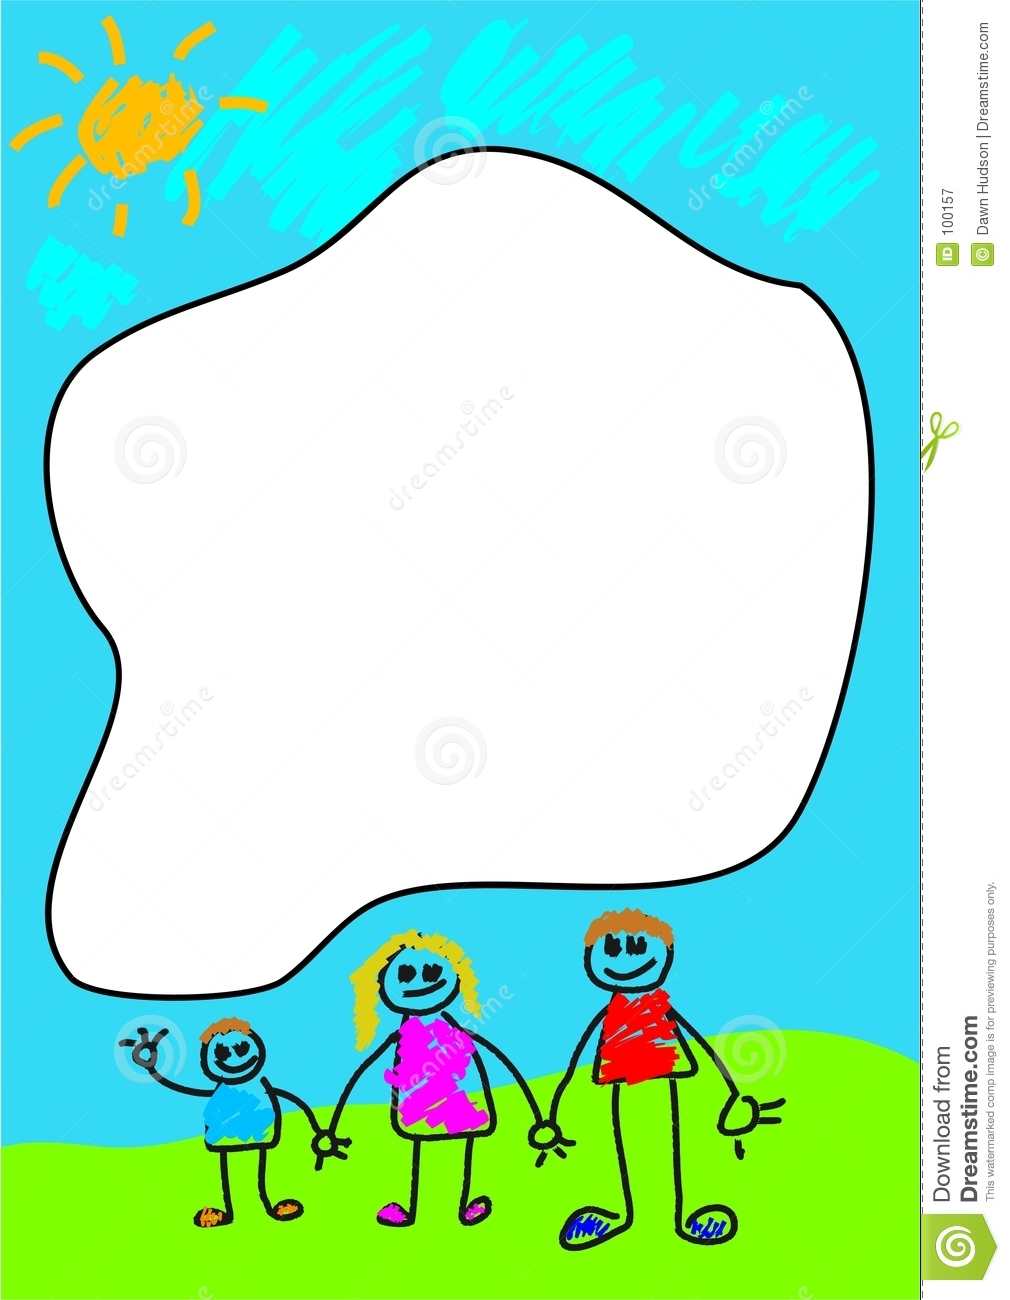 Family Frame Royalty Free Stock Photography Image 100157